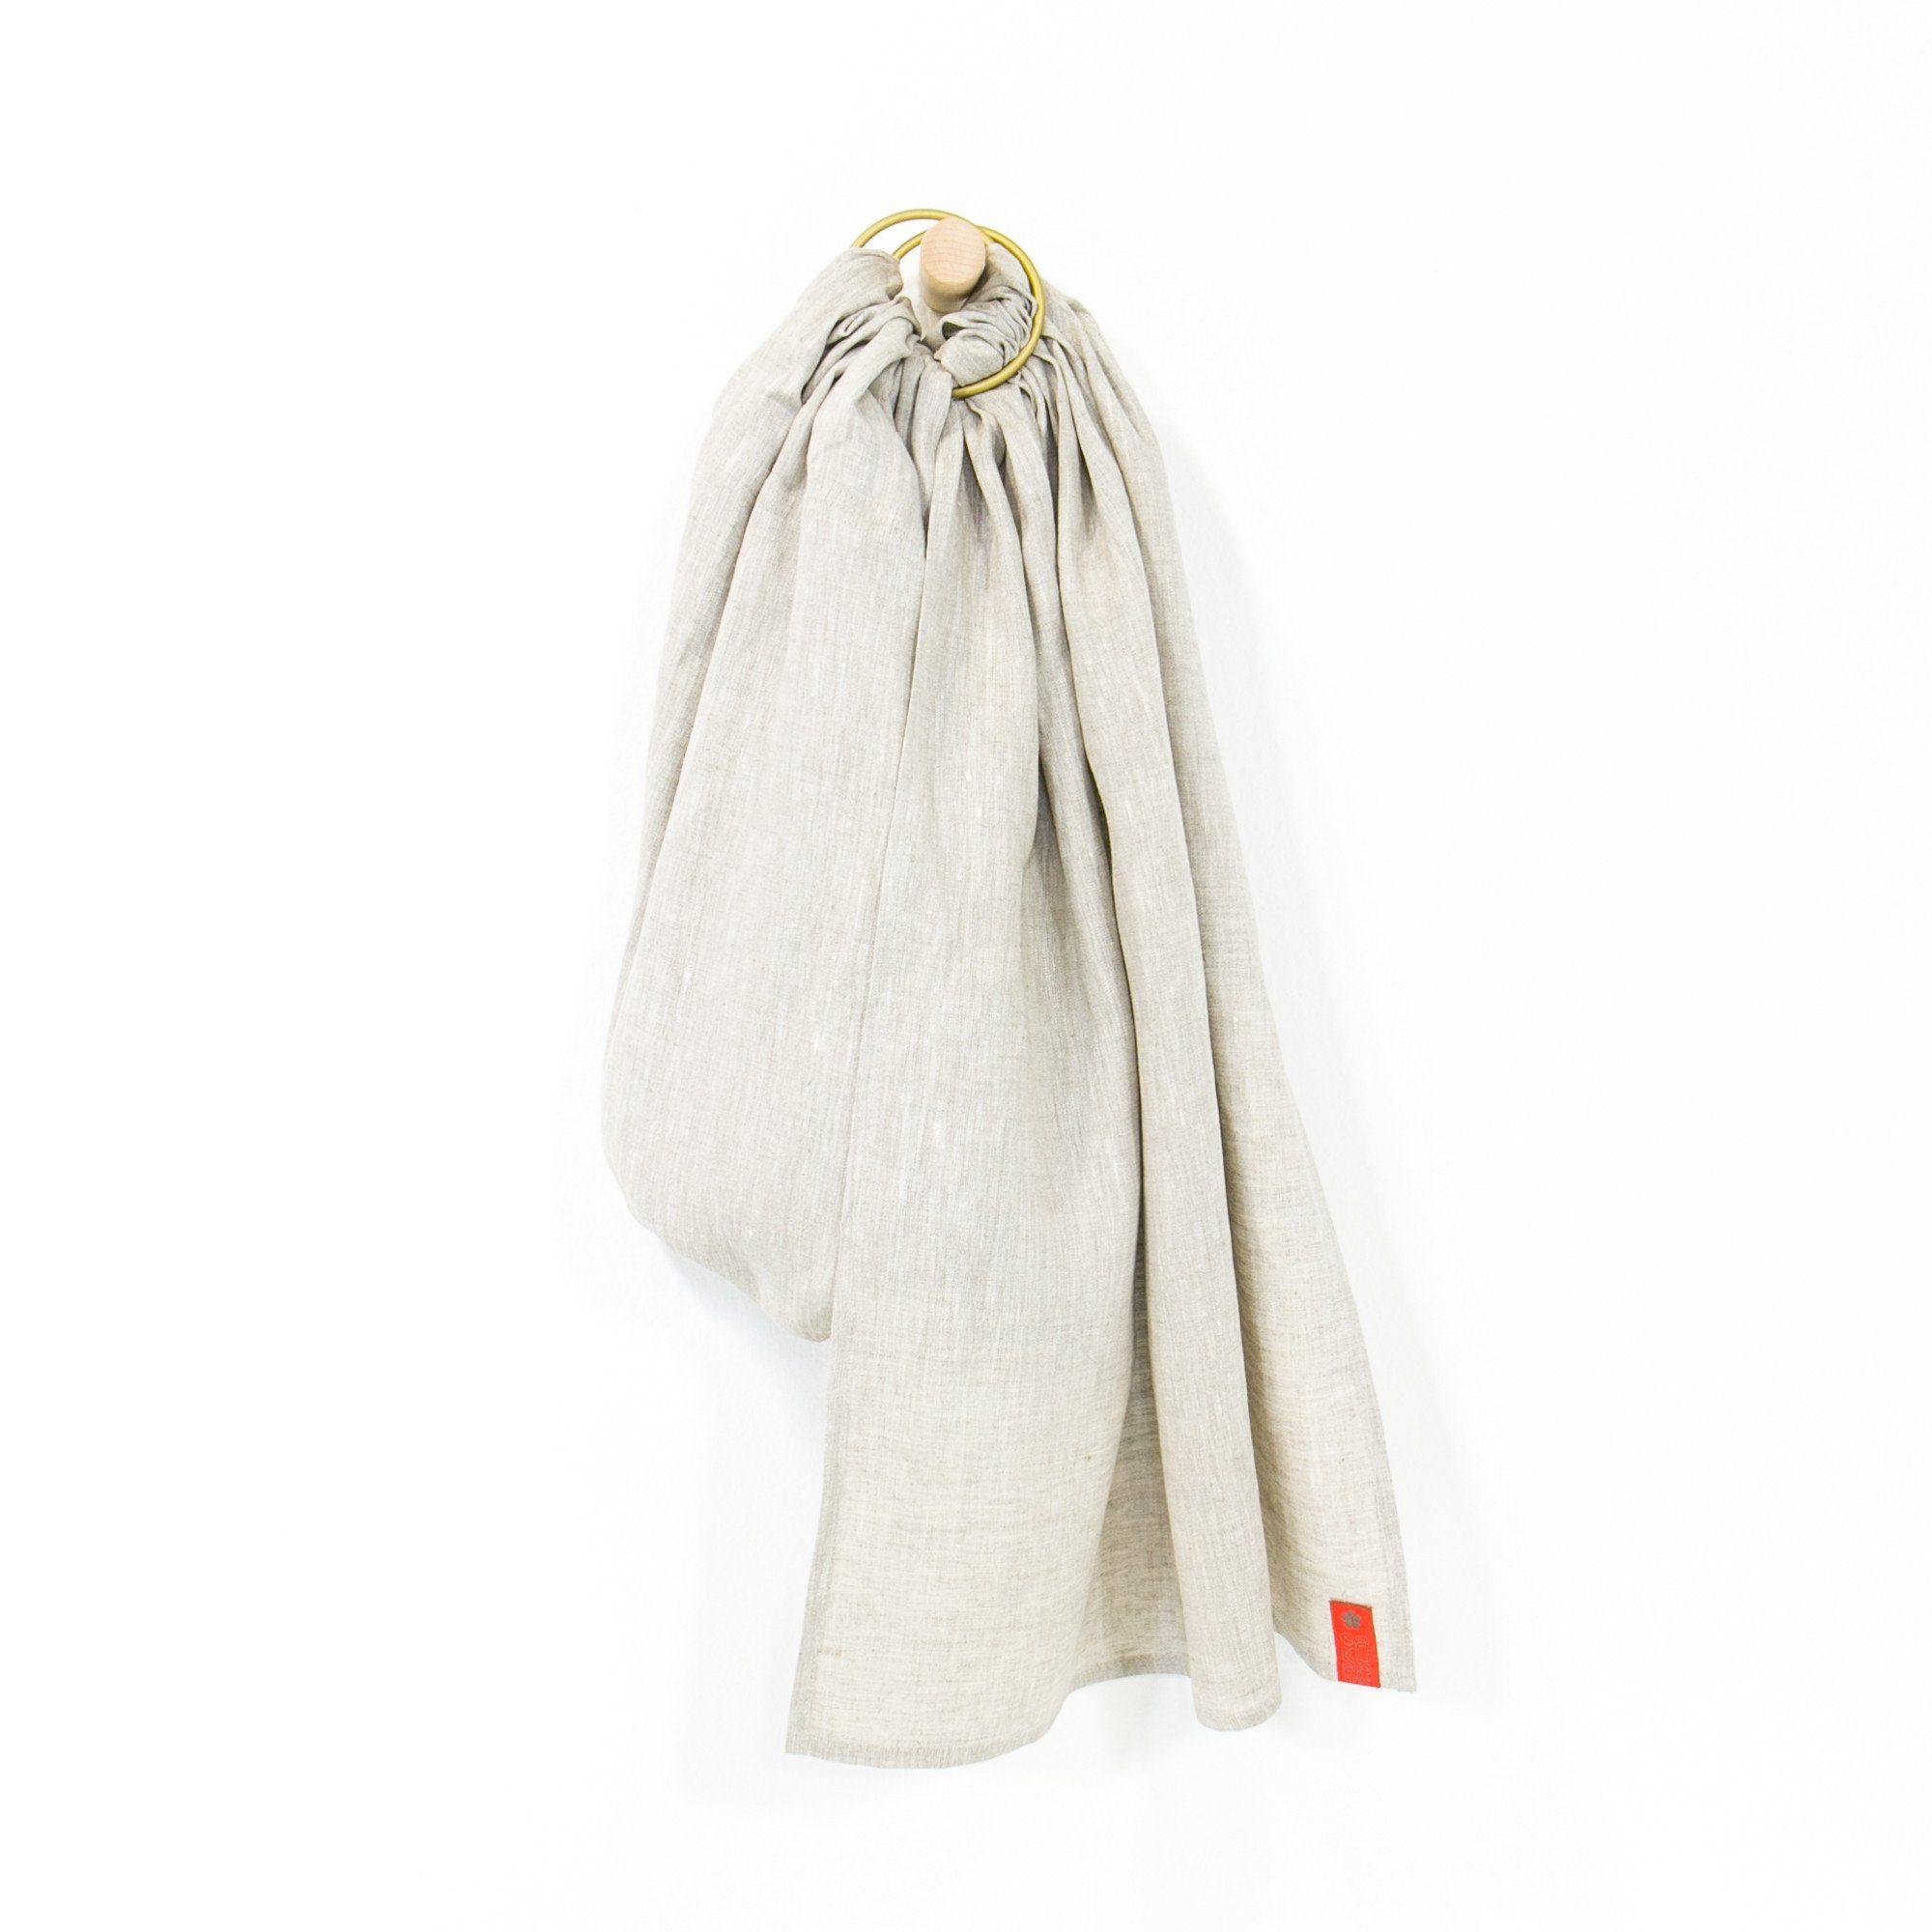 Sakura Bloom Maple Linen Ring Sling